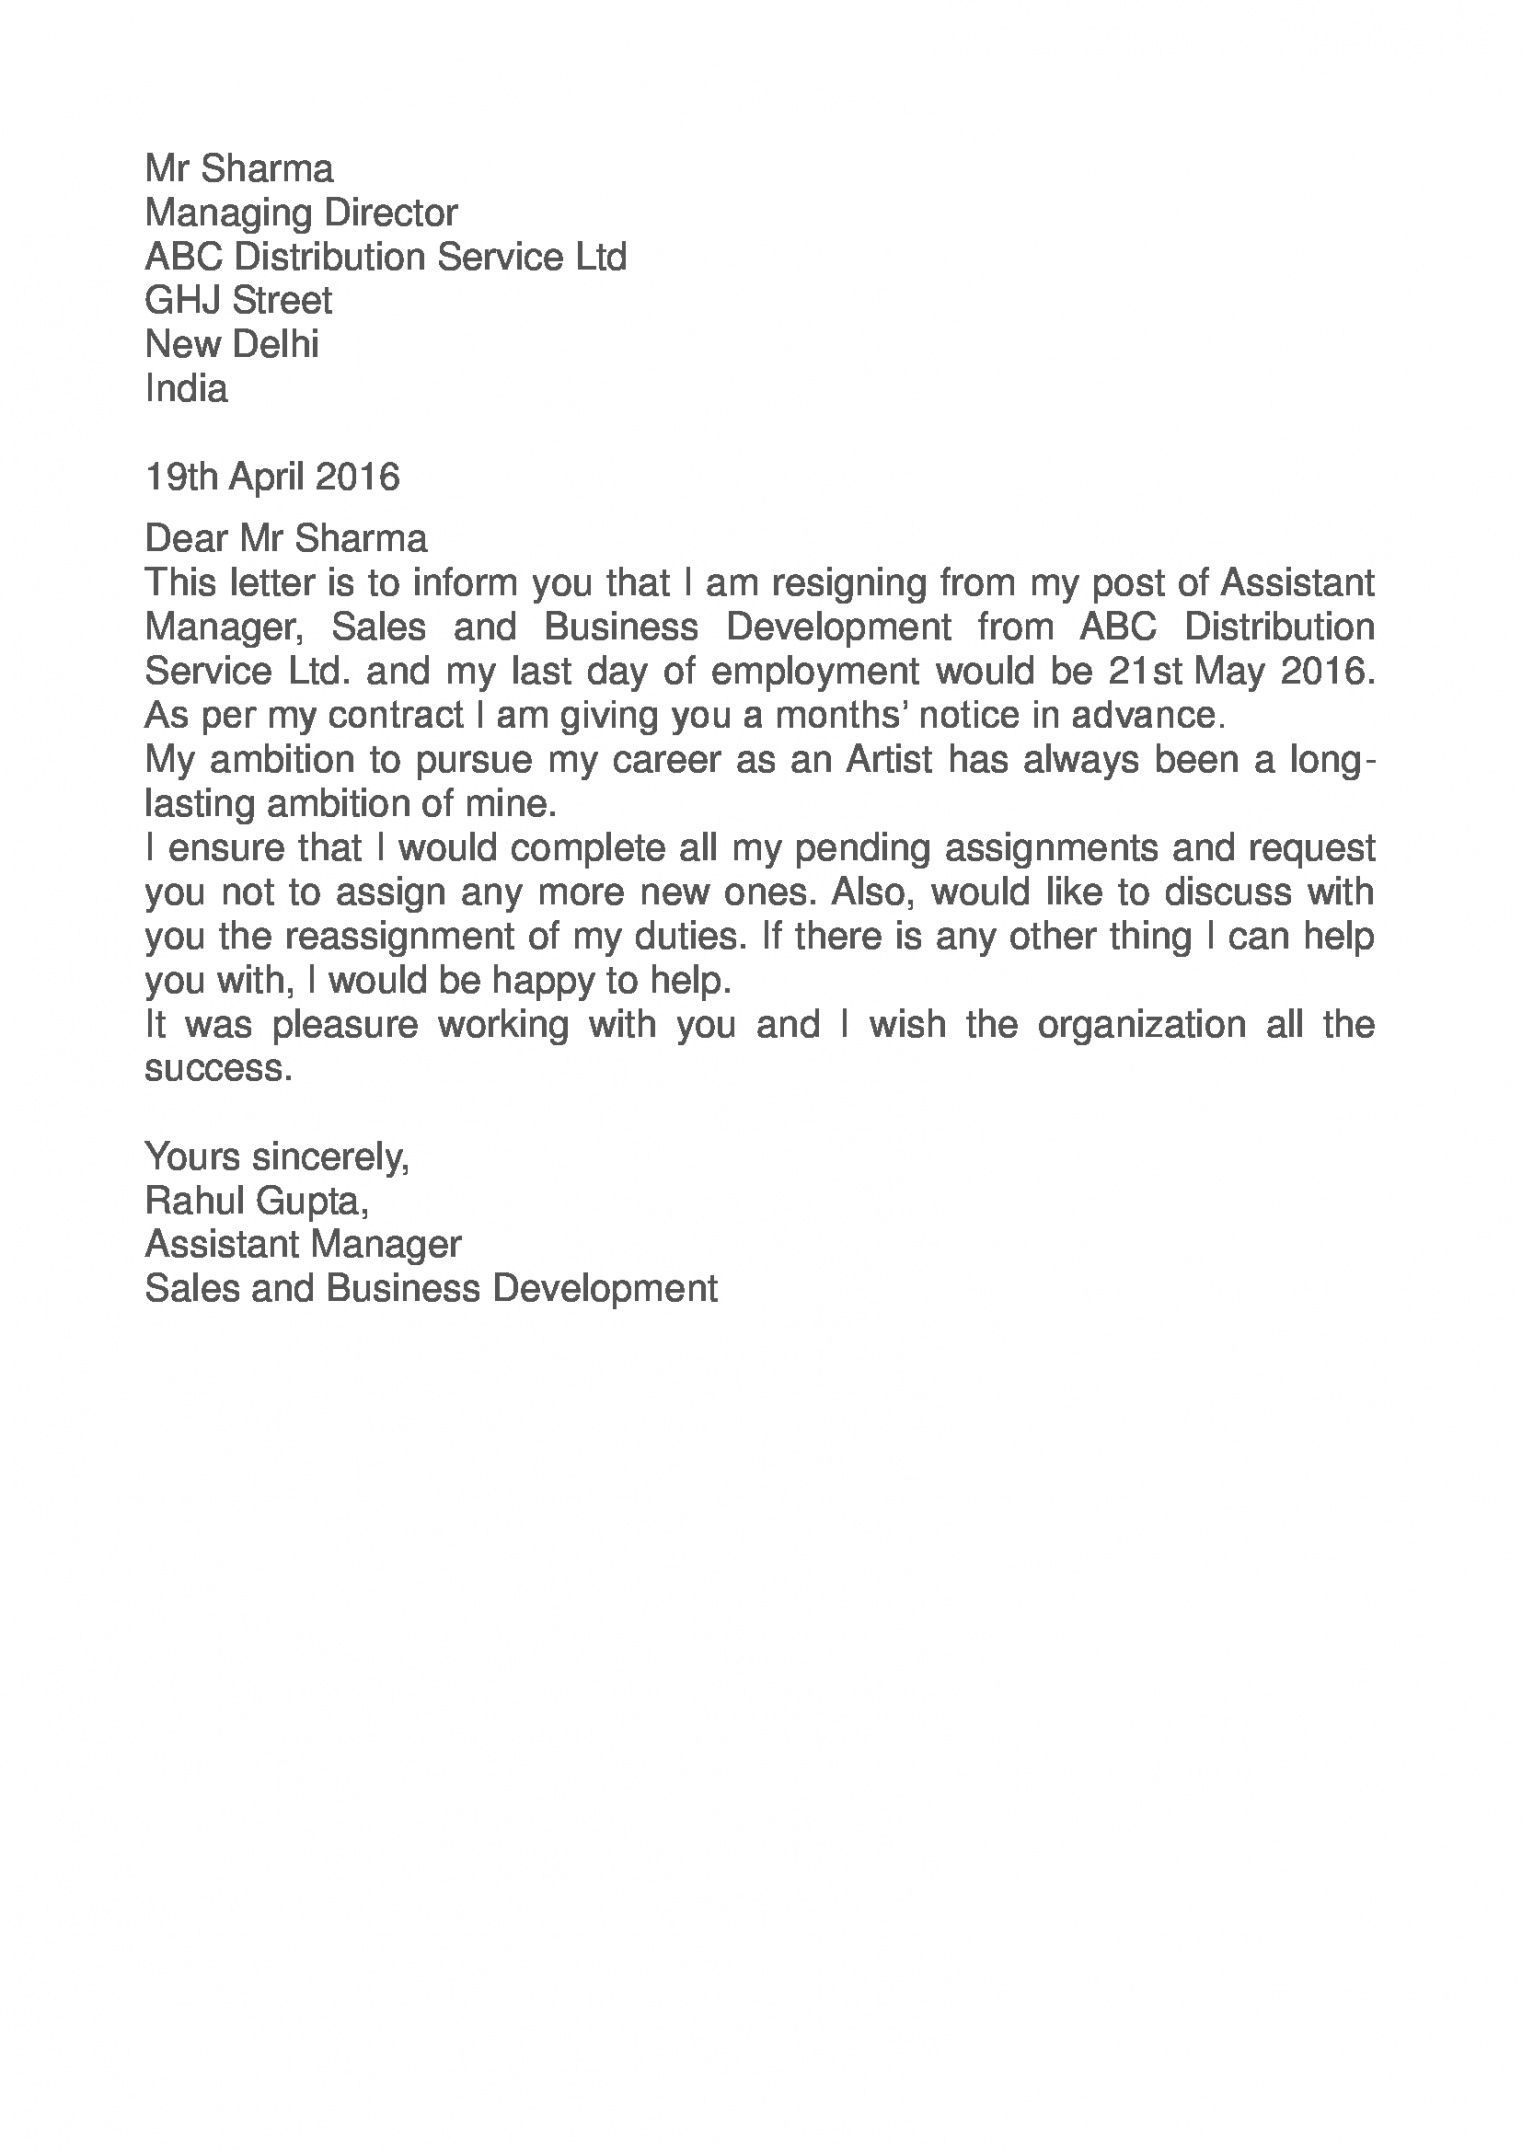 Get Our Example of Sales Assistant Resignation Letter in